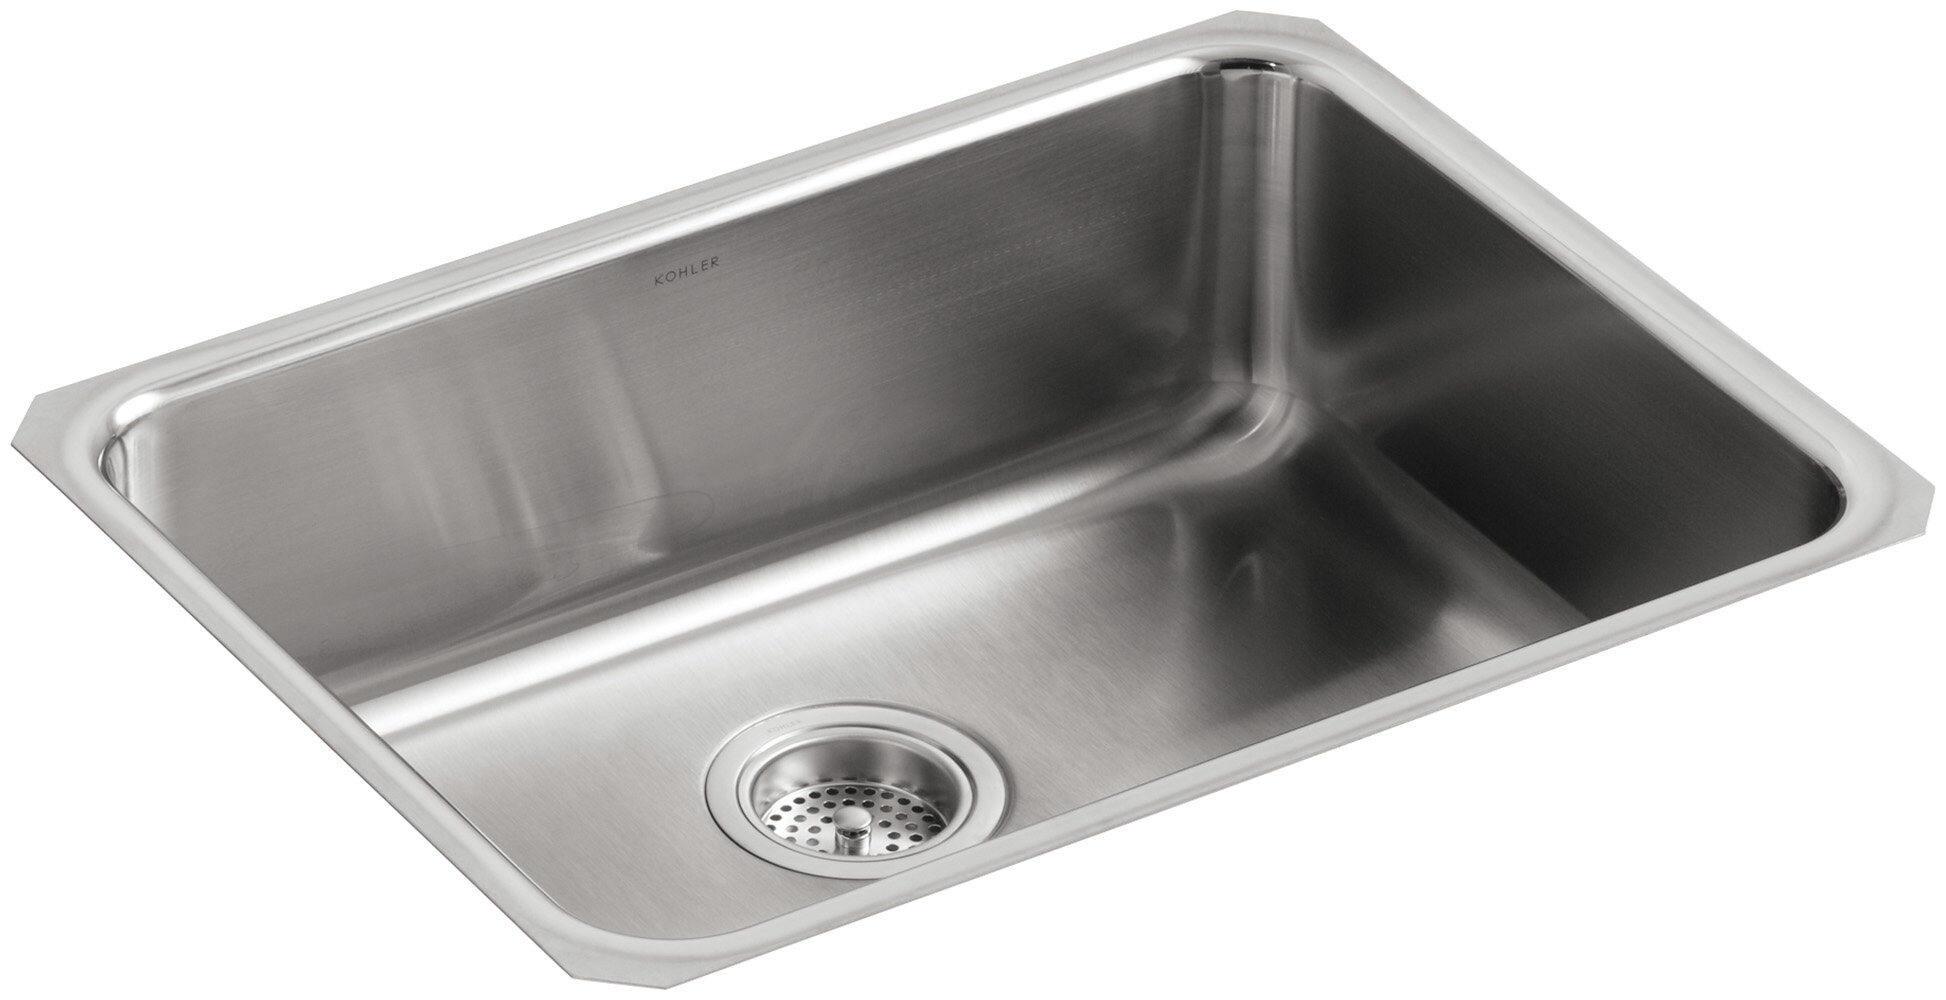 K 3332 Na Kohler Undertone 23 L X 17 1 2 W 7 5 8 Extra Large Squared Under Mount Single Bowl Kitchen Sink Wayfair